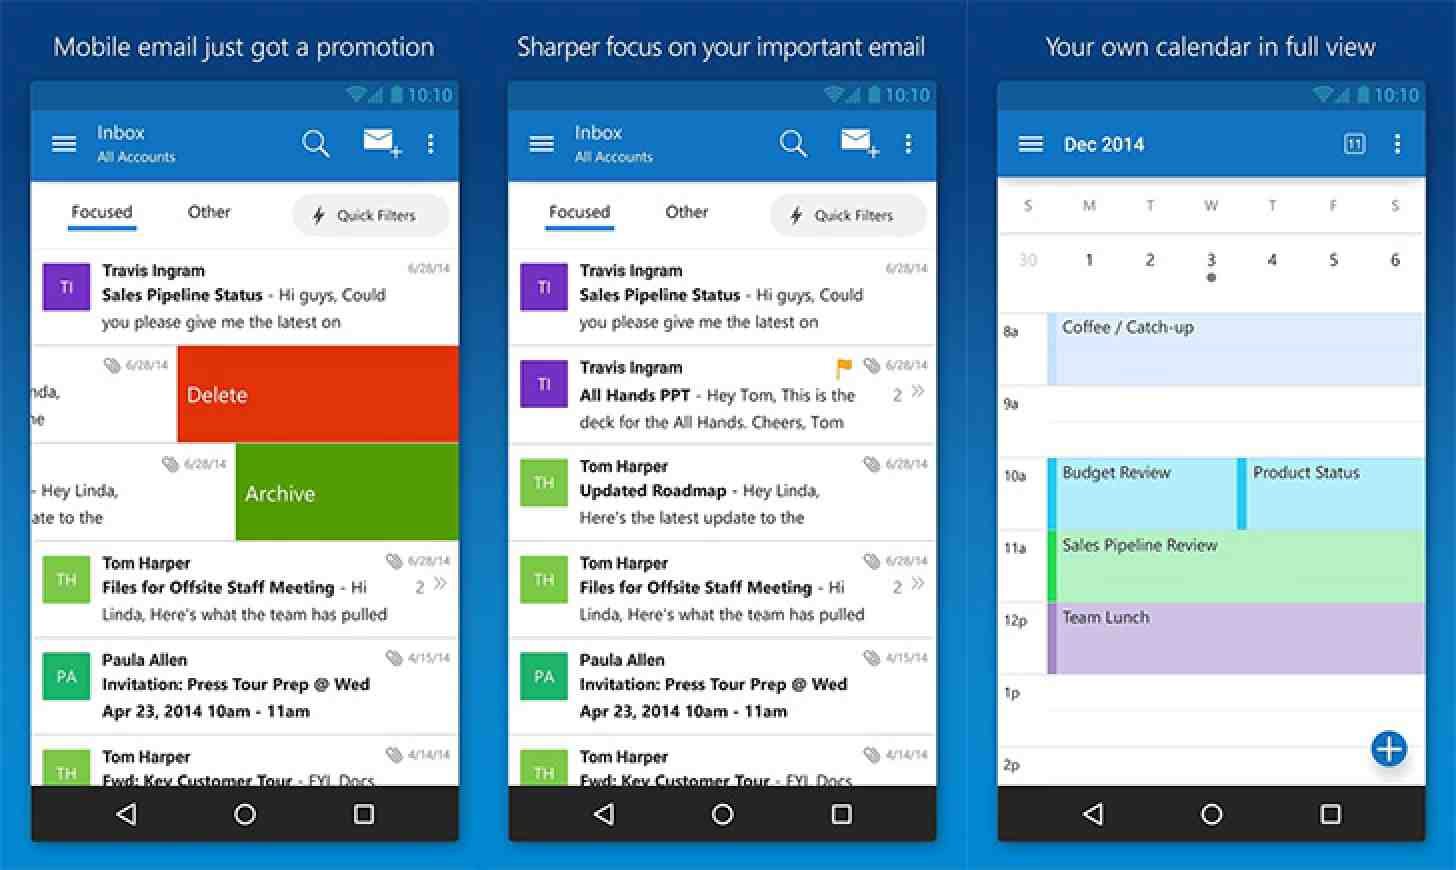 Microsoft releases its Outlook Email app for iOS and Android